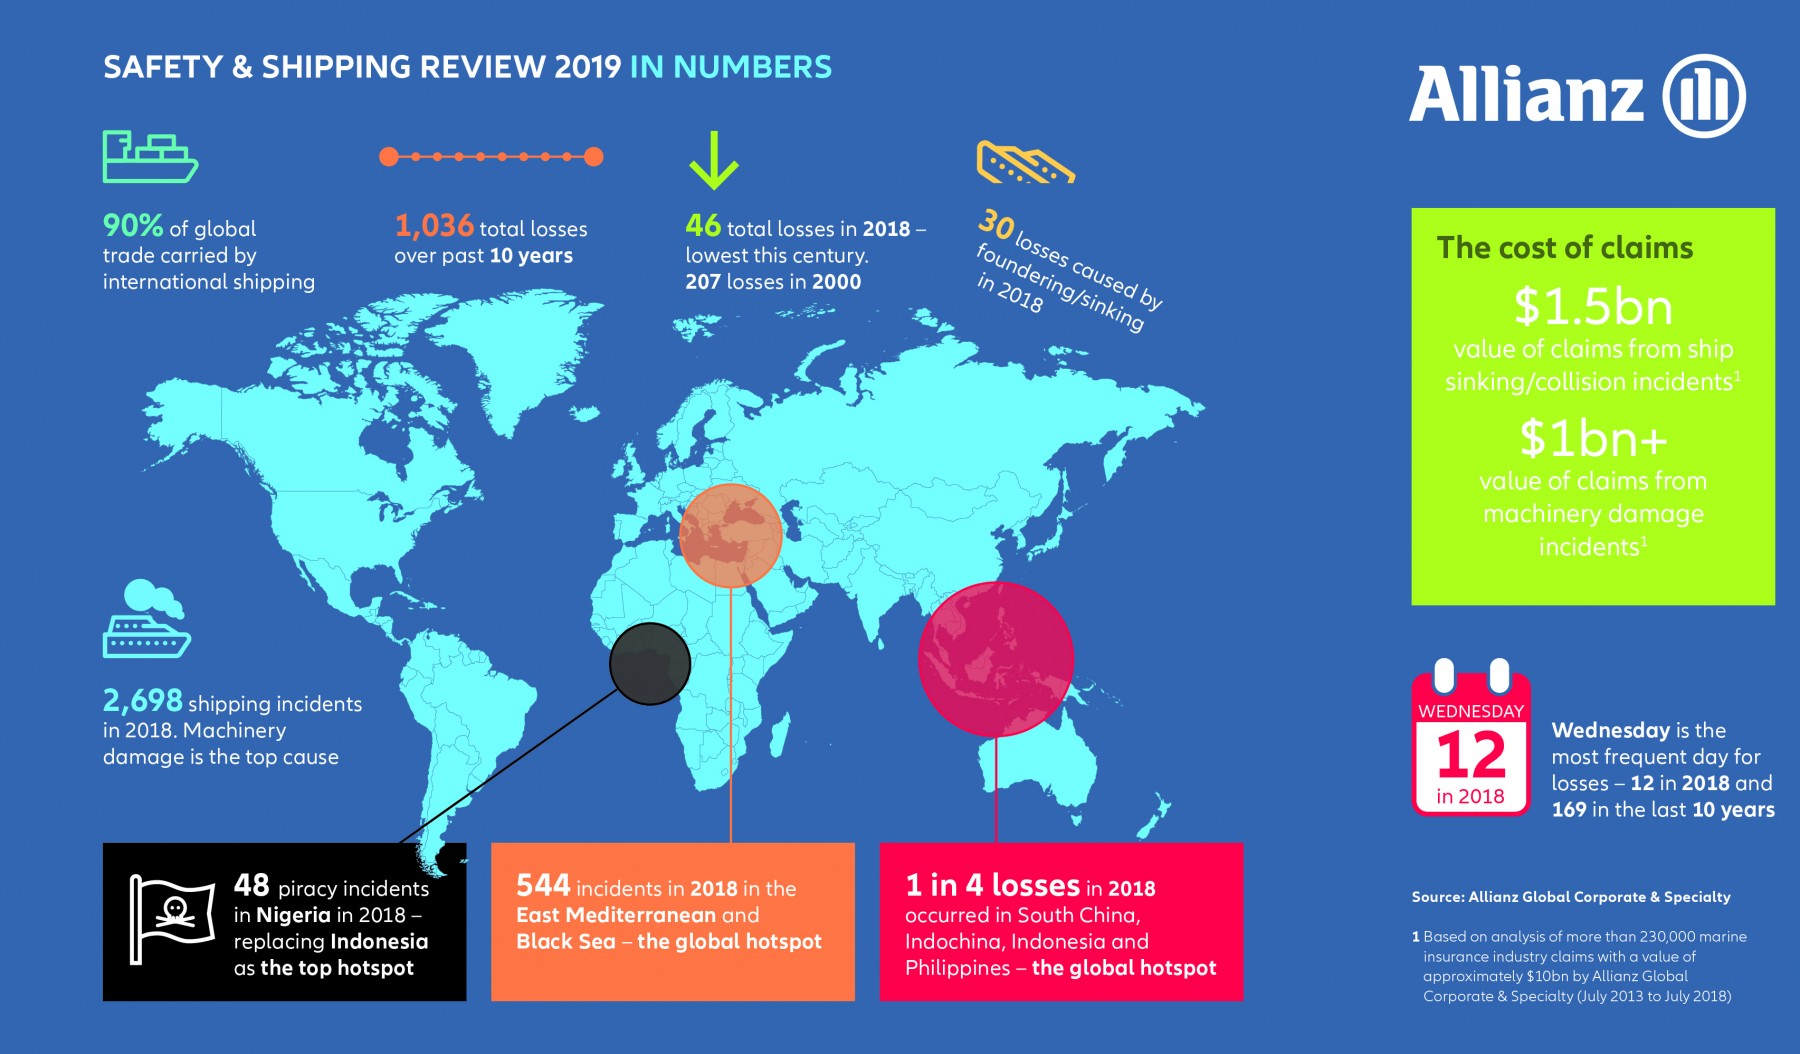 AGCS-Shipping-Review-2019-in-numbers-large